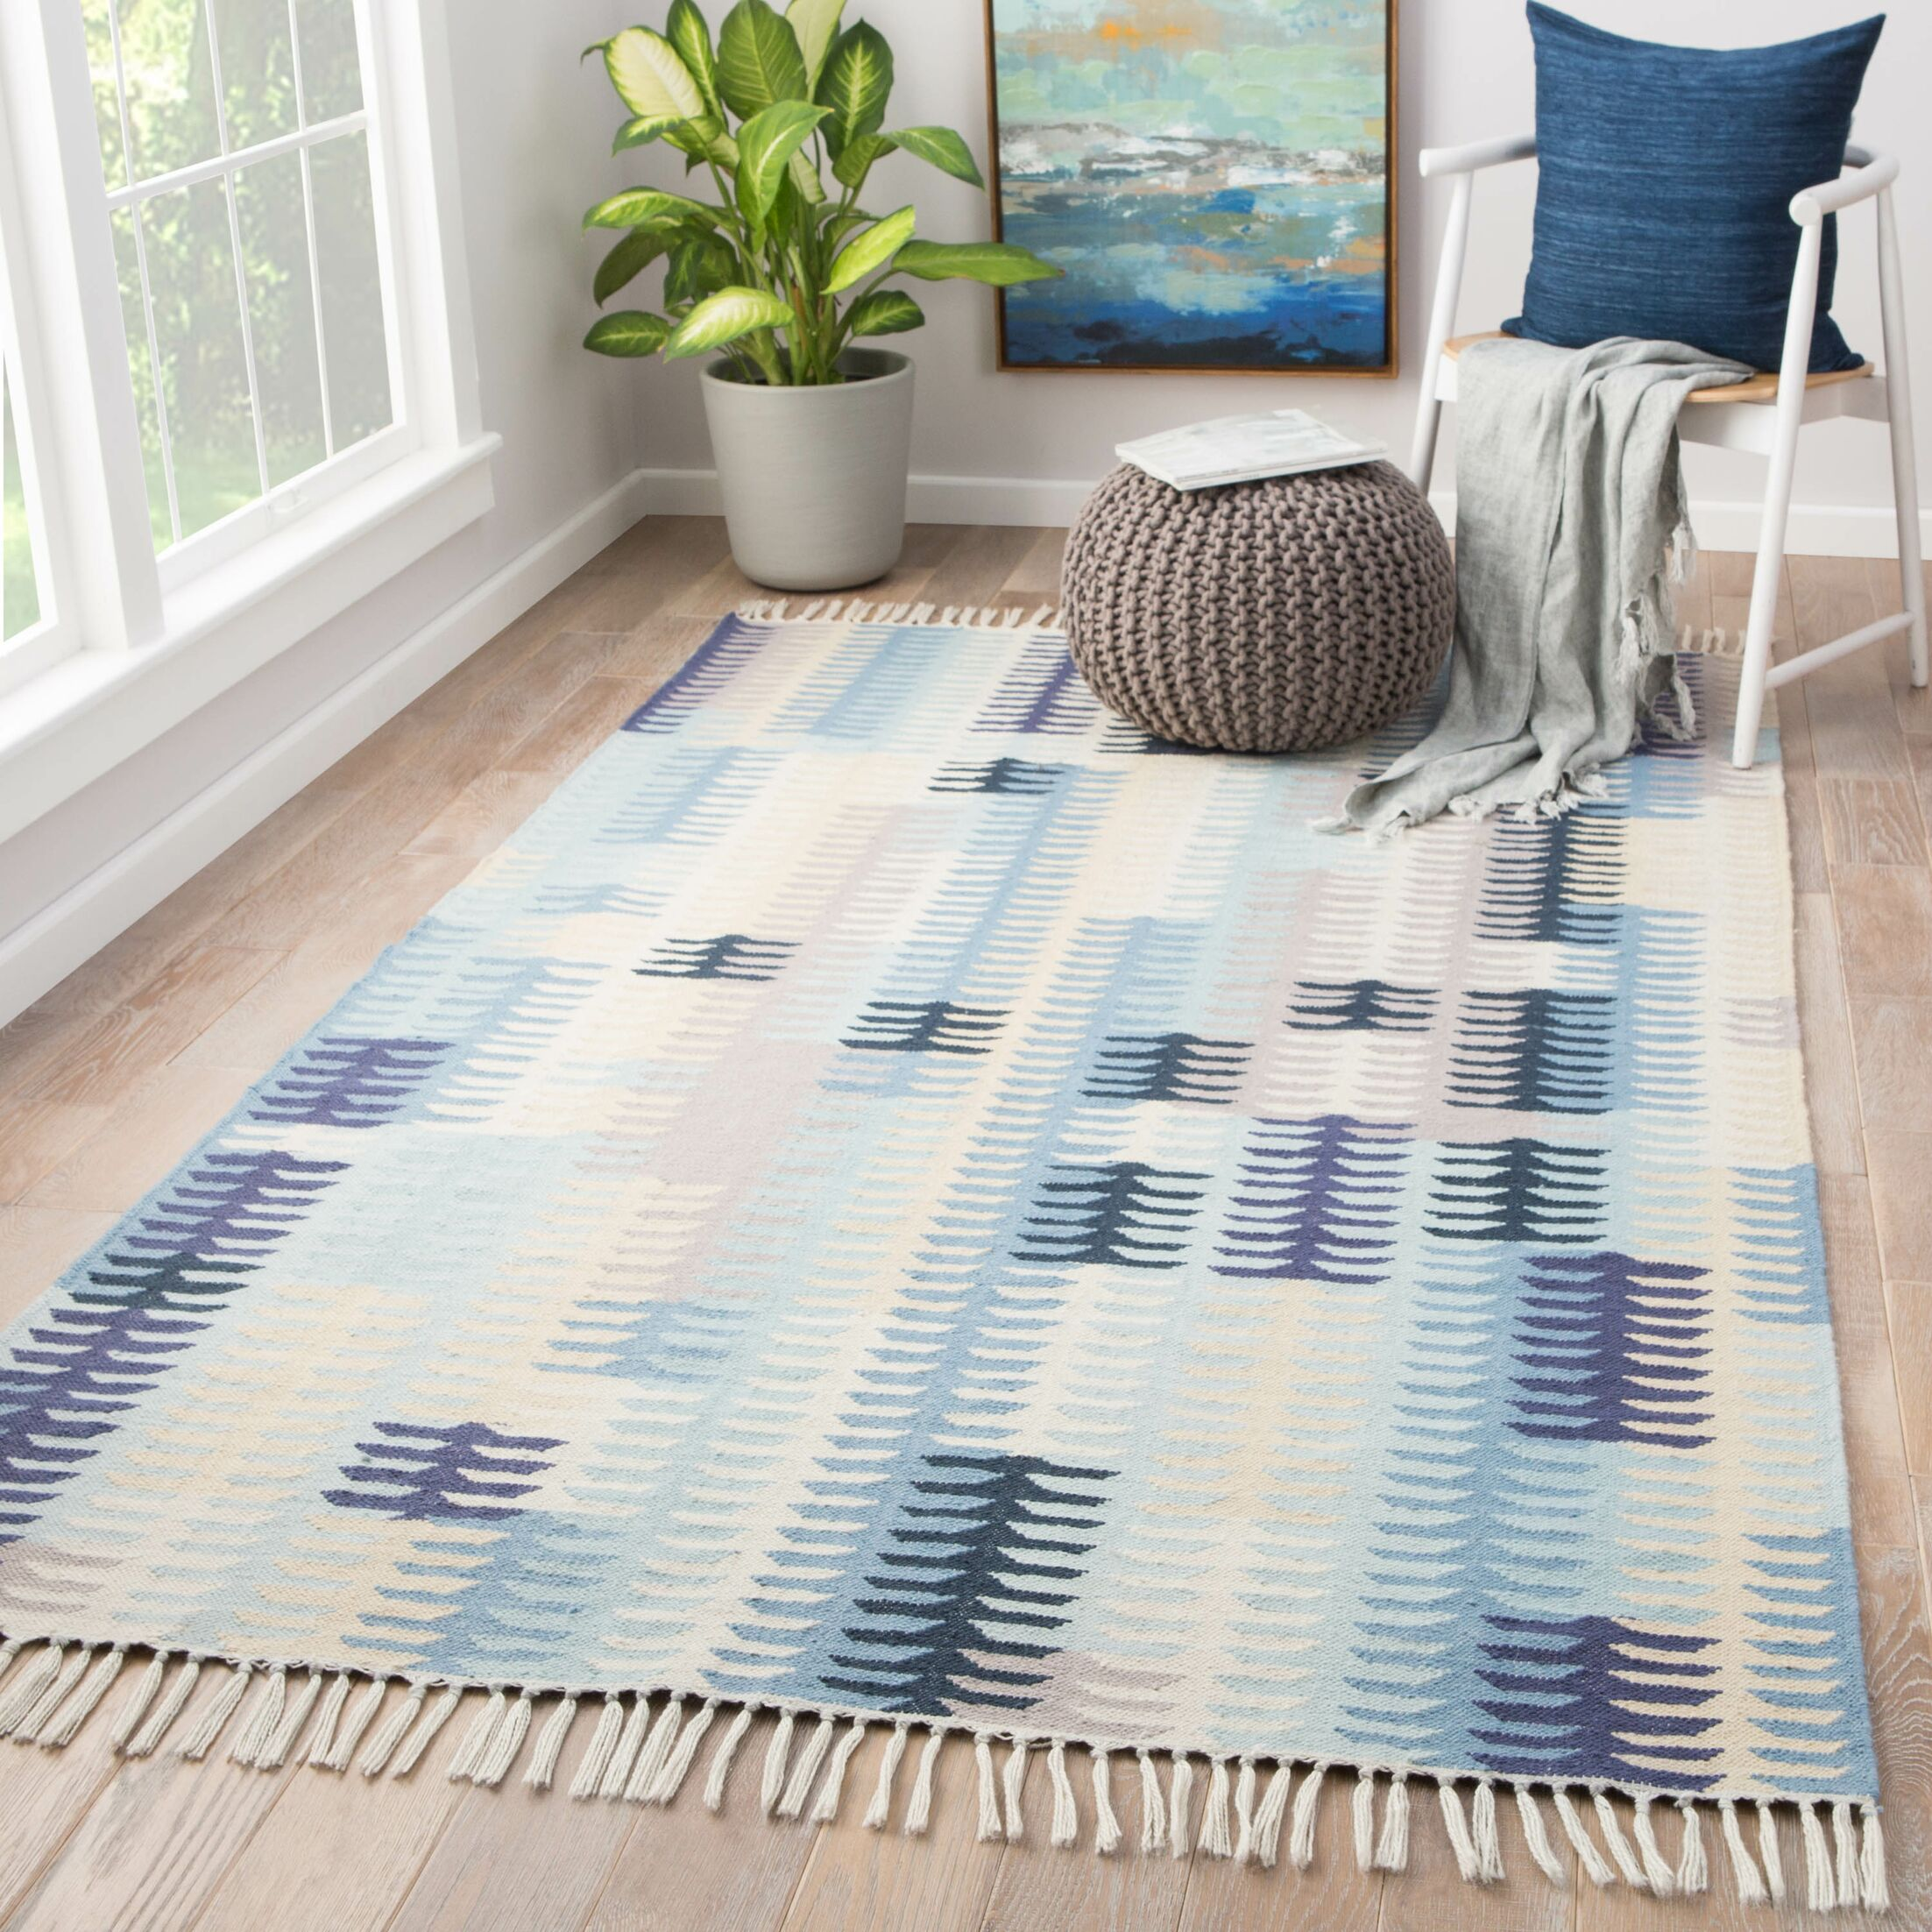 Afton Flat Woven Blue Indoor/Outdoor Area Rug Rug Size: Rectangle 8' x 10'